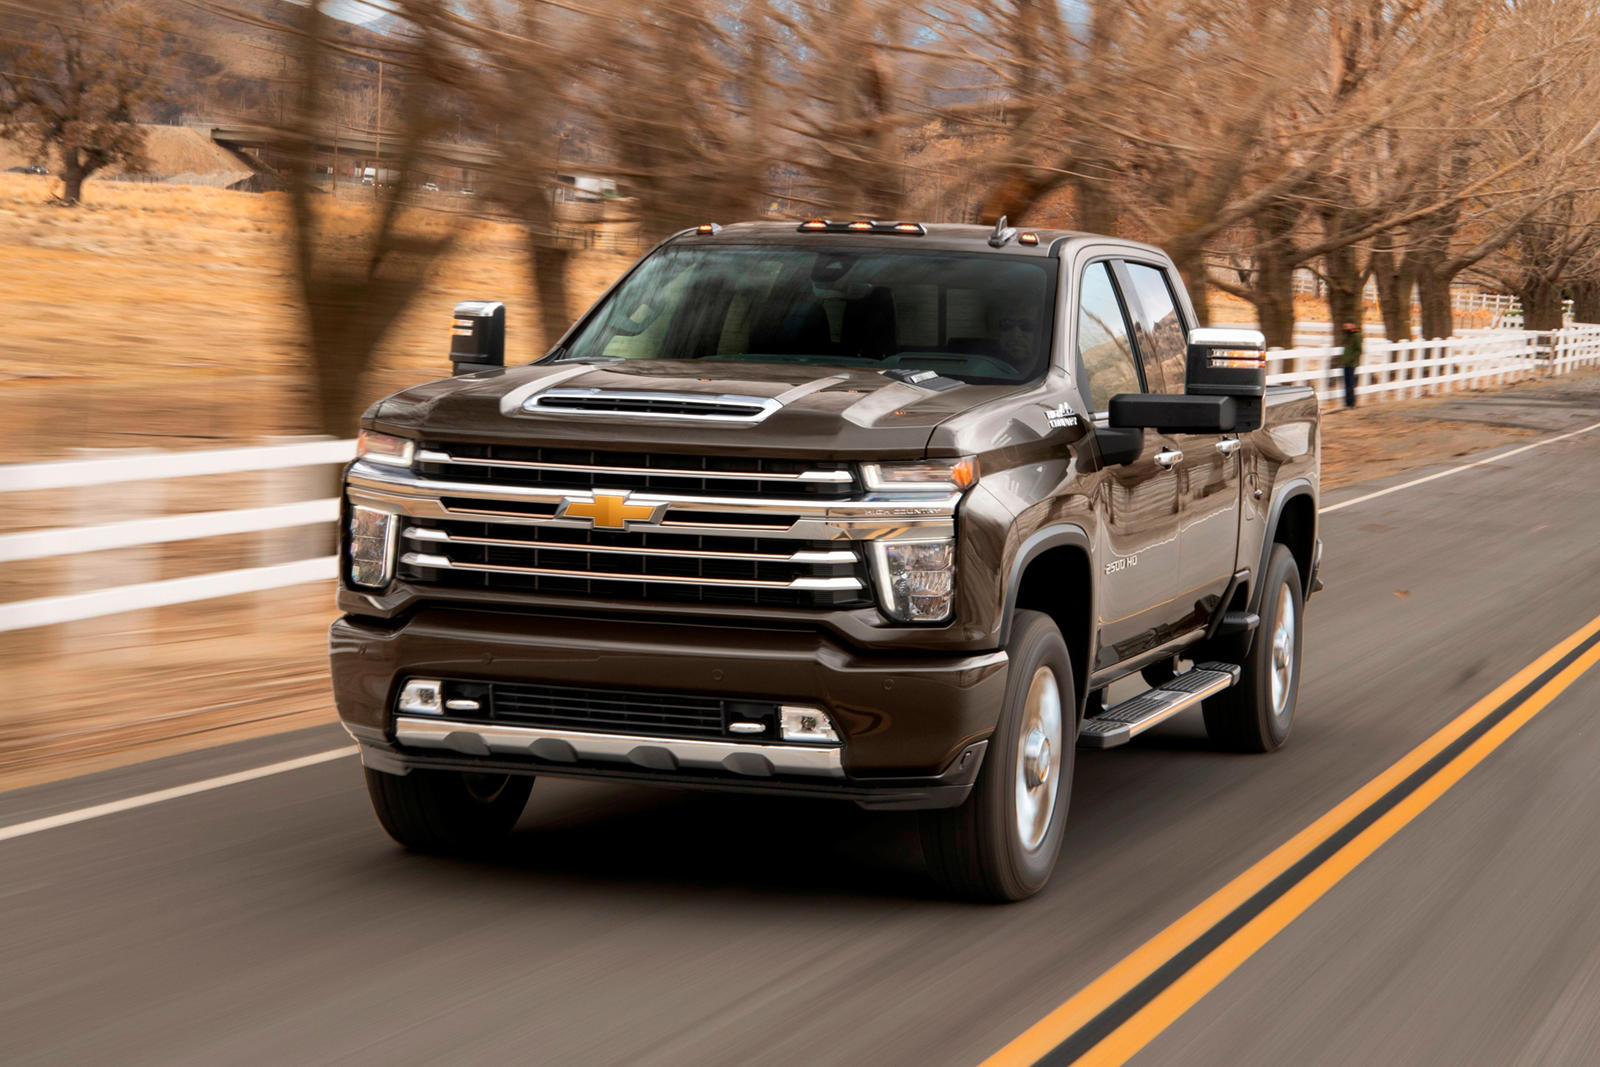 2021 Chevrolet Silverado Hd Coming With Improved Tech | Carbuzz 2021 Chevy Silverado 2500 Engine Options, Features, Grill